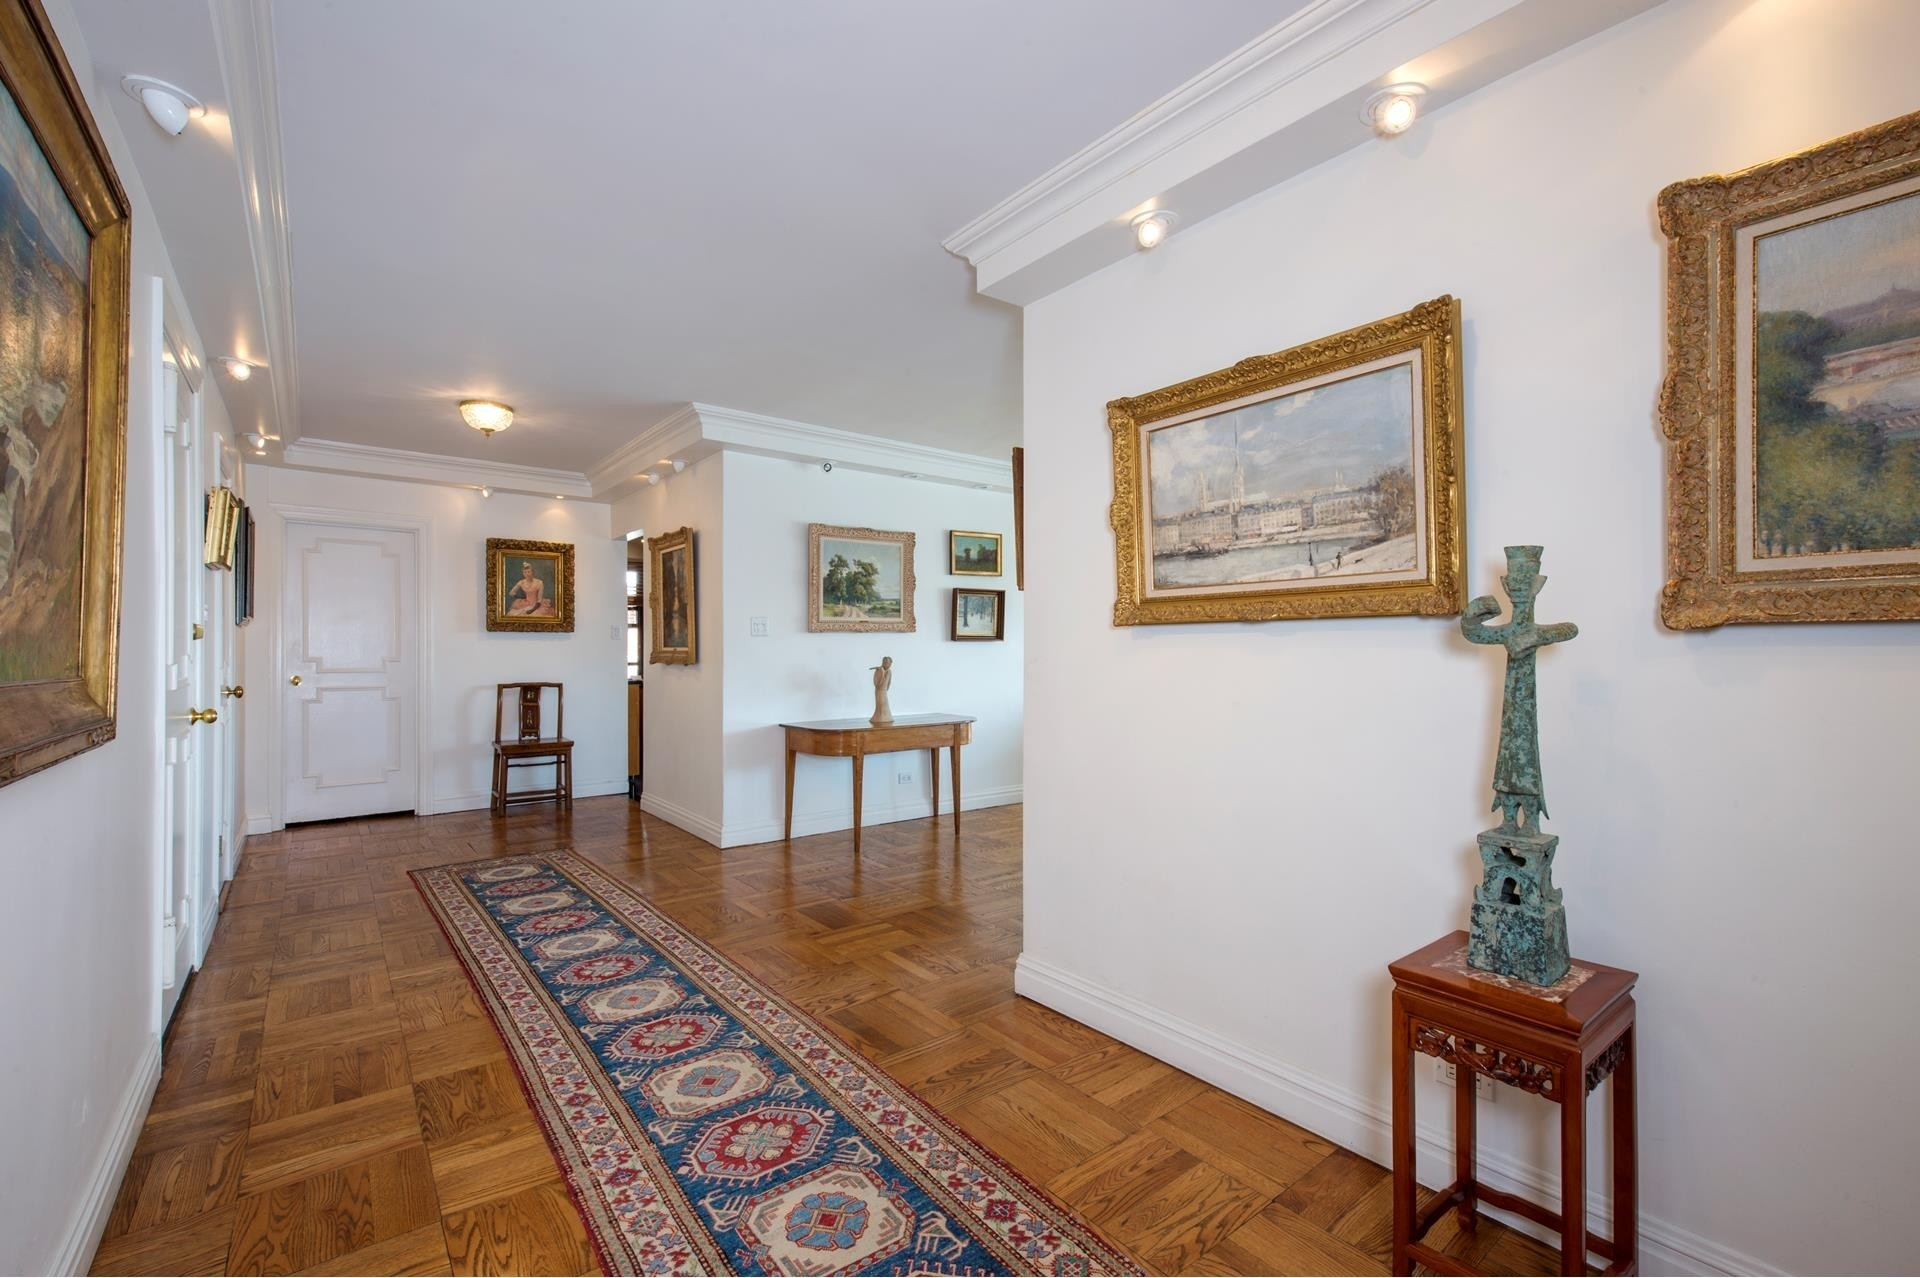 Co-op Properties for Sale at 50 SUTTON PL S, 16J Sutton Place, New York, NY 10022